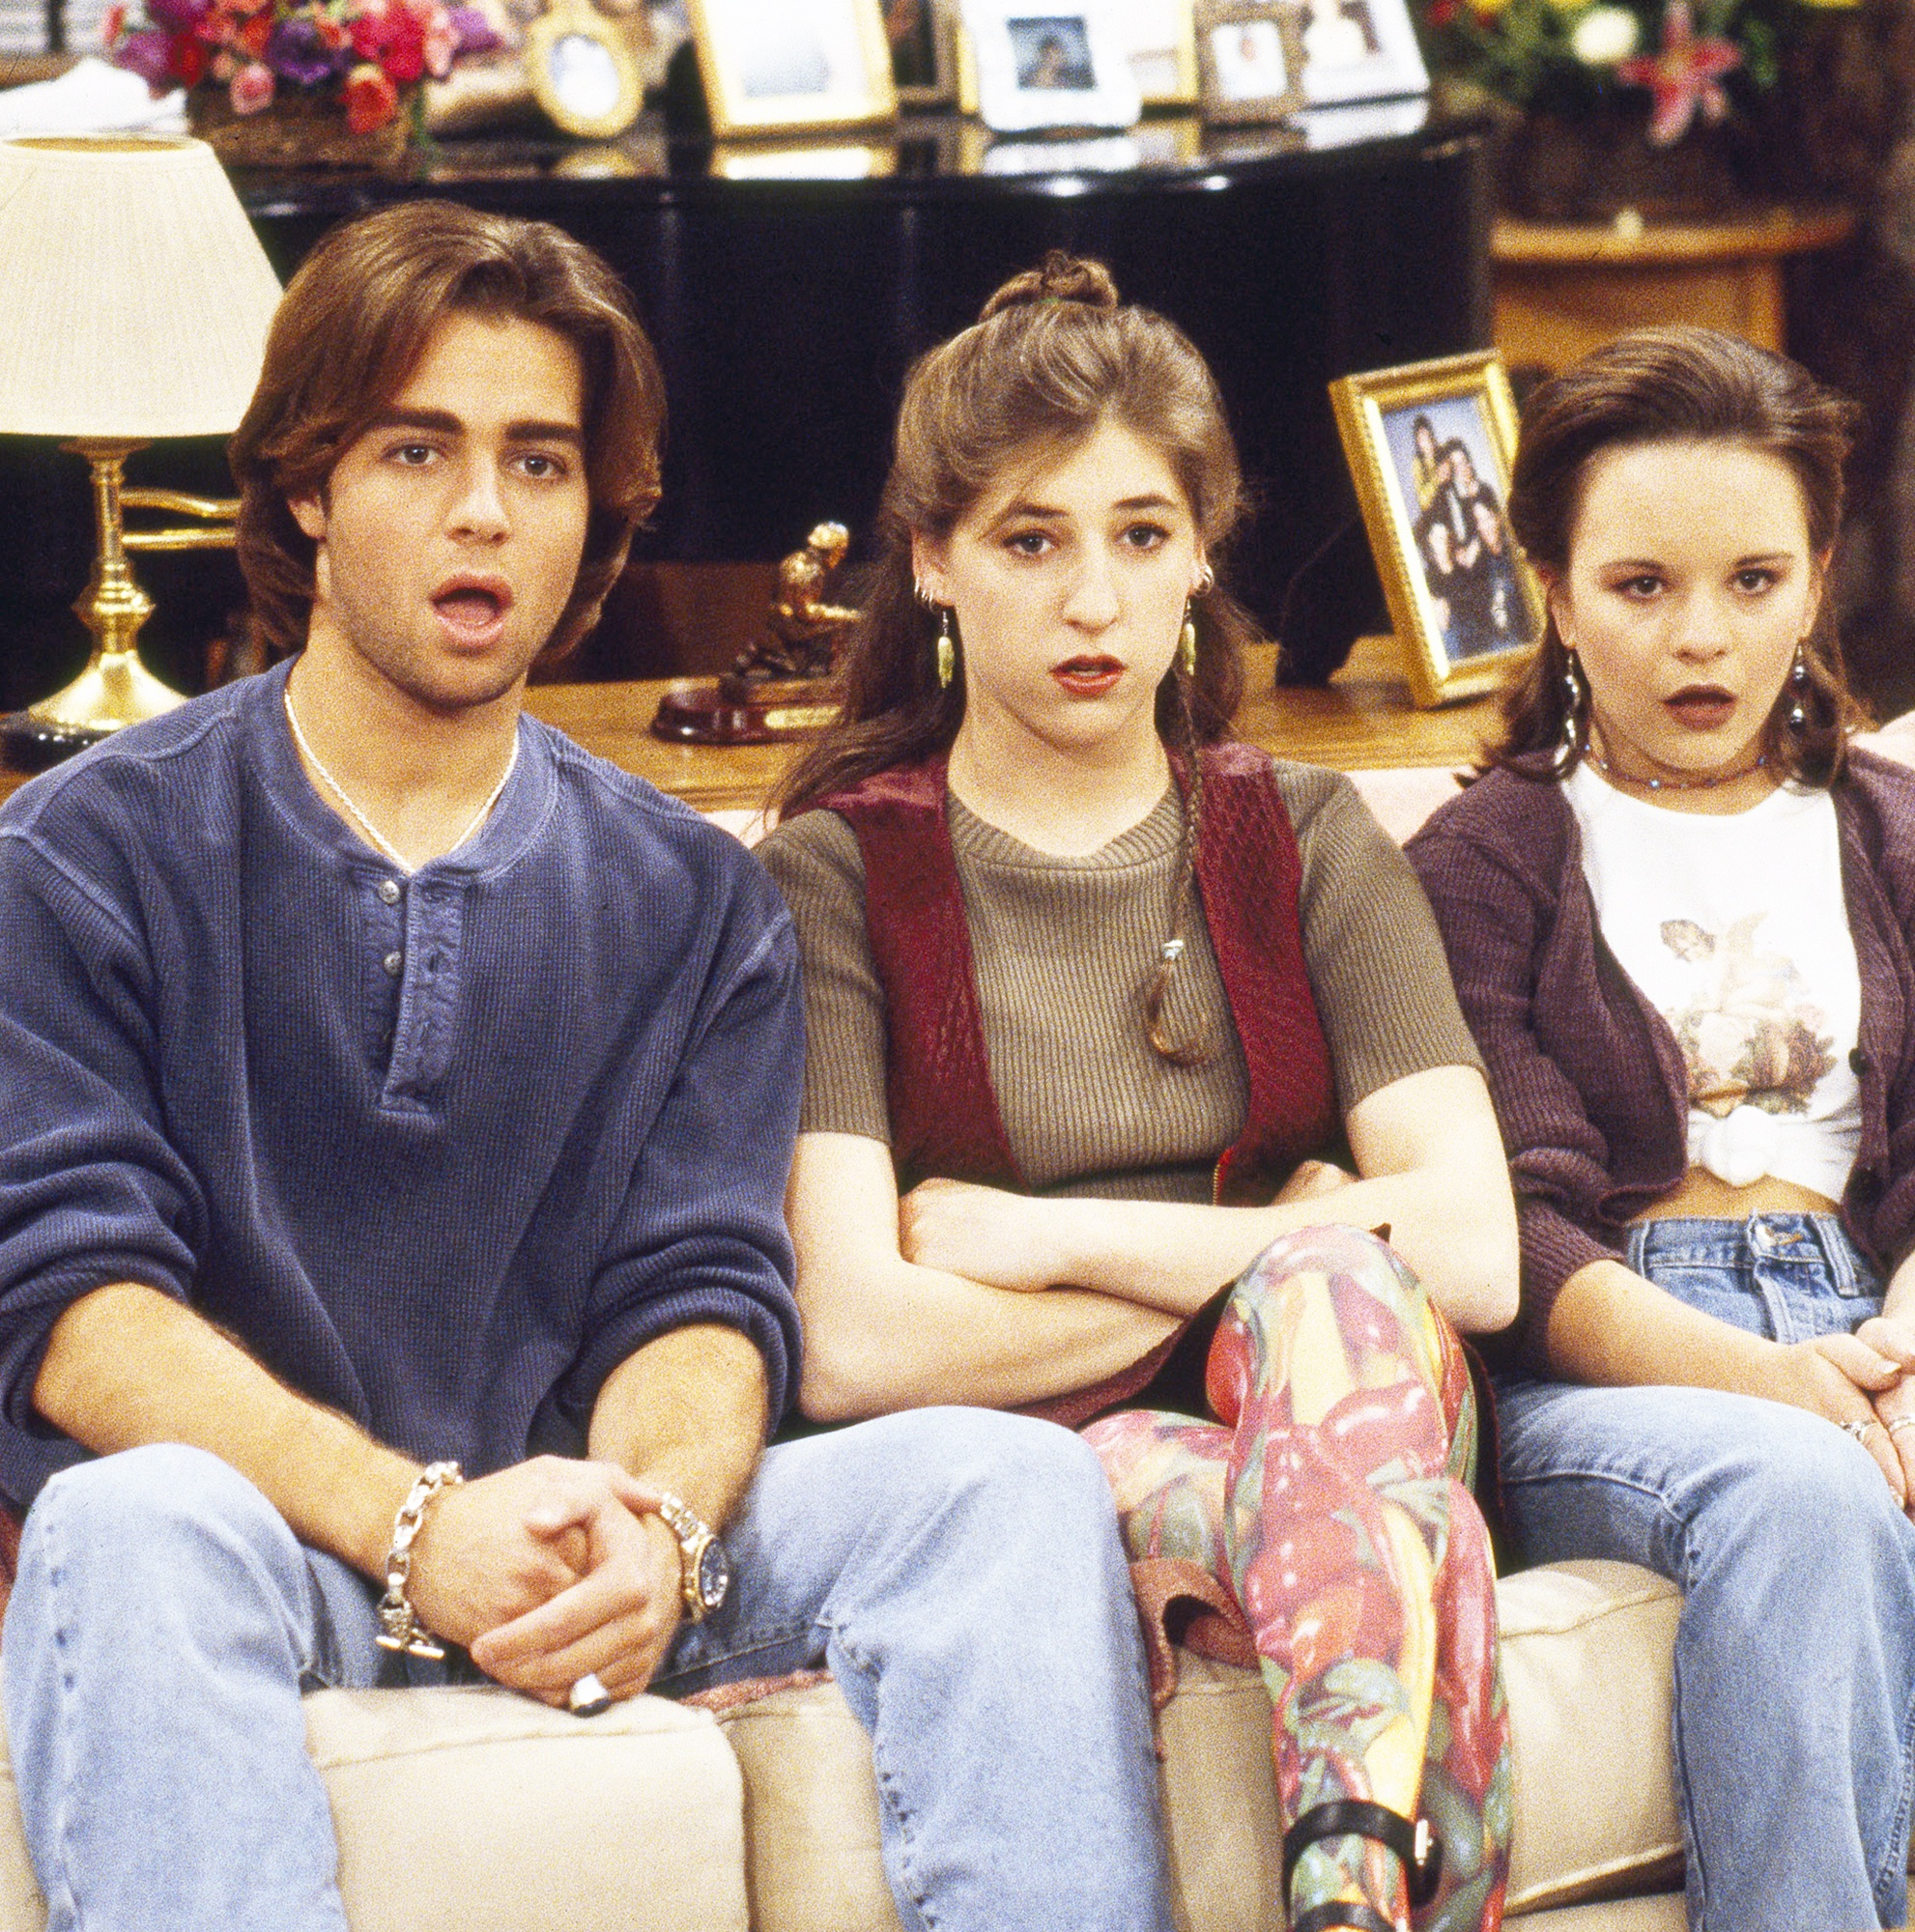 138376343 joey lawrence mayim bialik jenna von oy zoom a94353d2 e497 4e37 bbd3 dd8b4391e512 25 Things You Never Knew About The Big Bang Theory